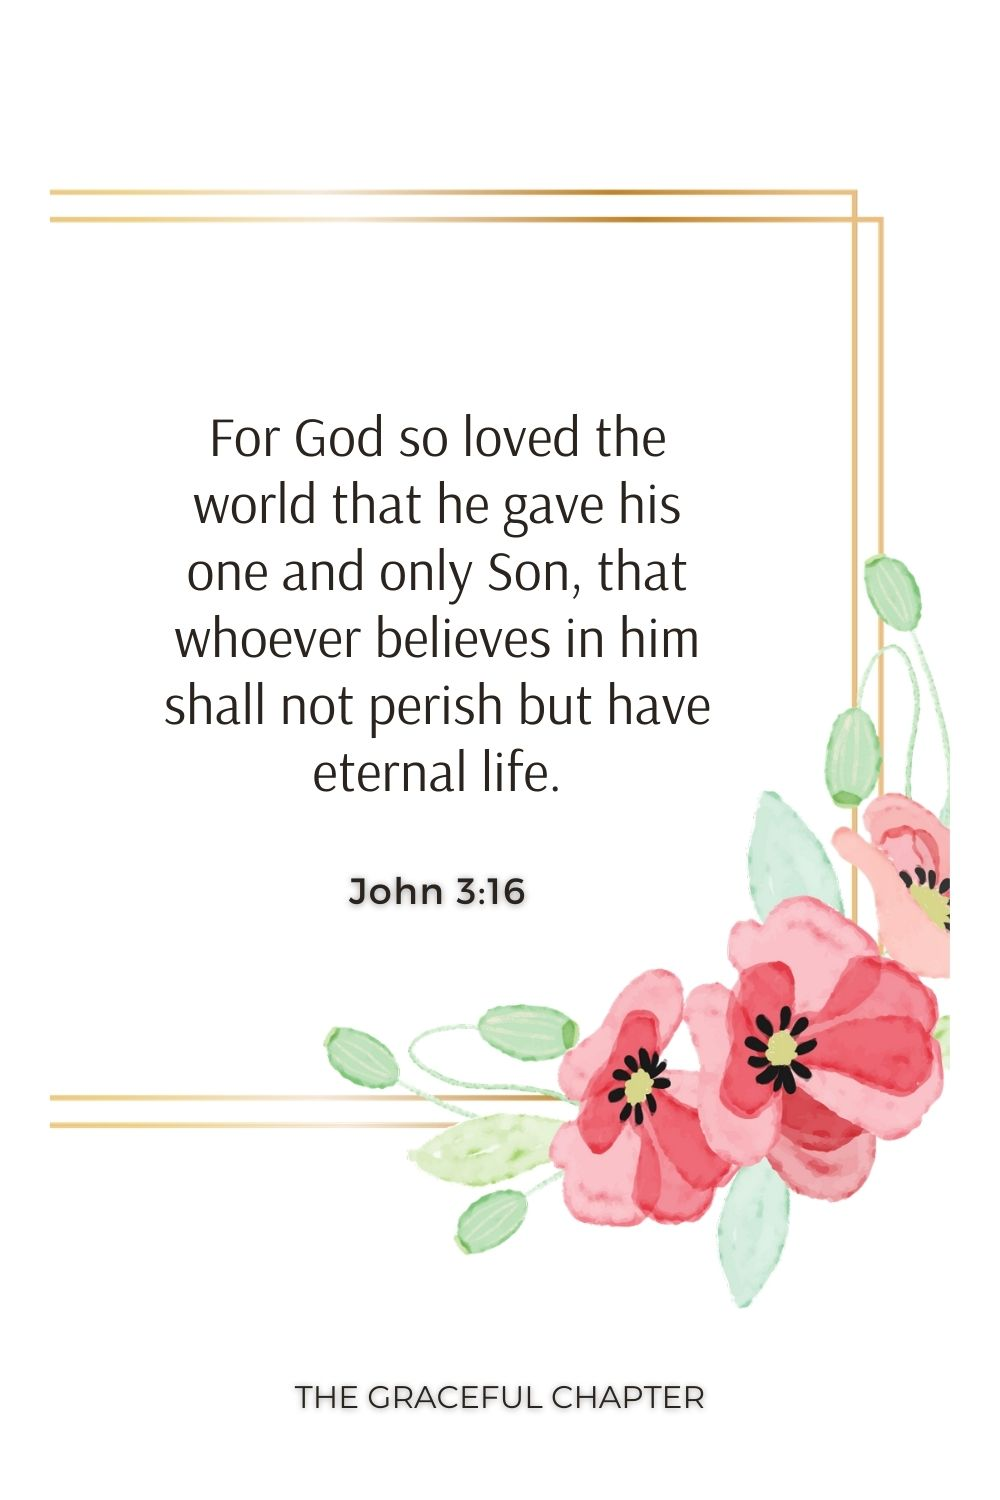 For God so loved the world that he gave his one and only Son, that whoever believes in him shall not perish but have eternal life. John 3:16